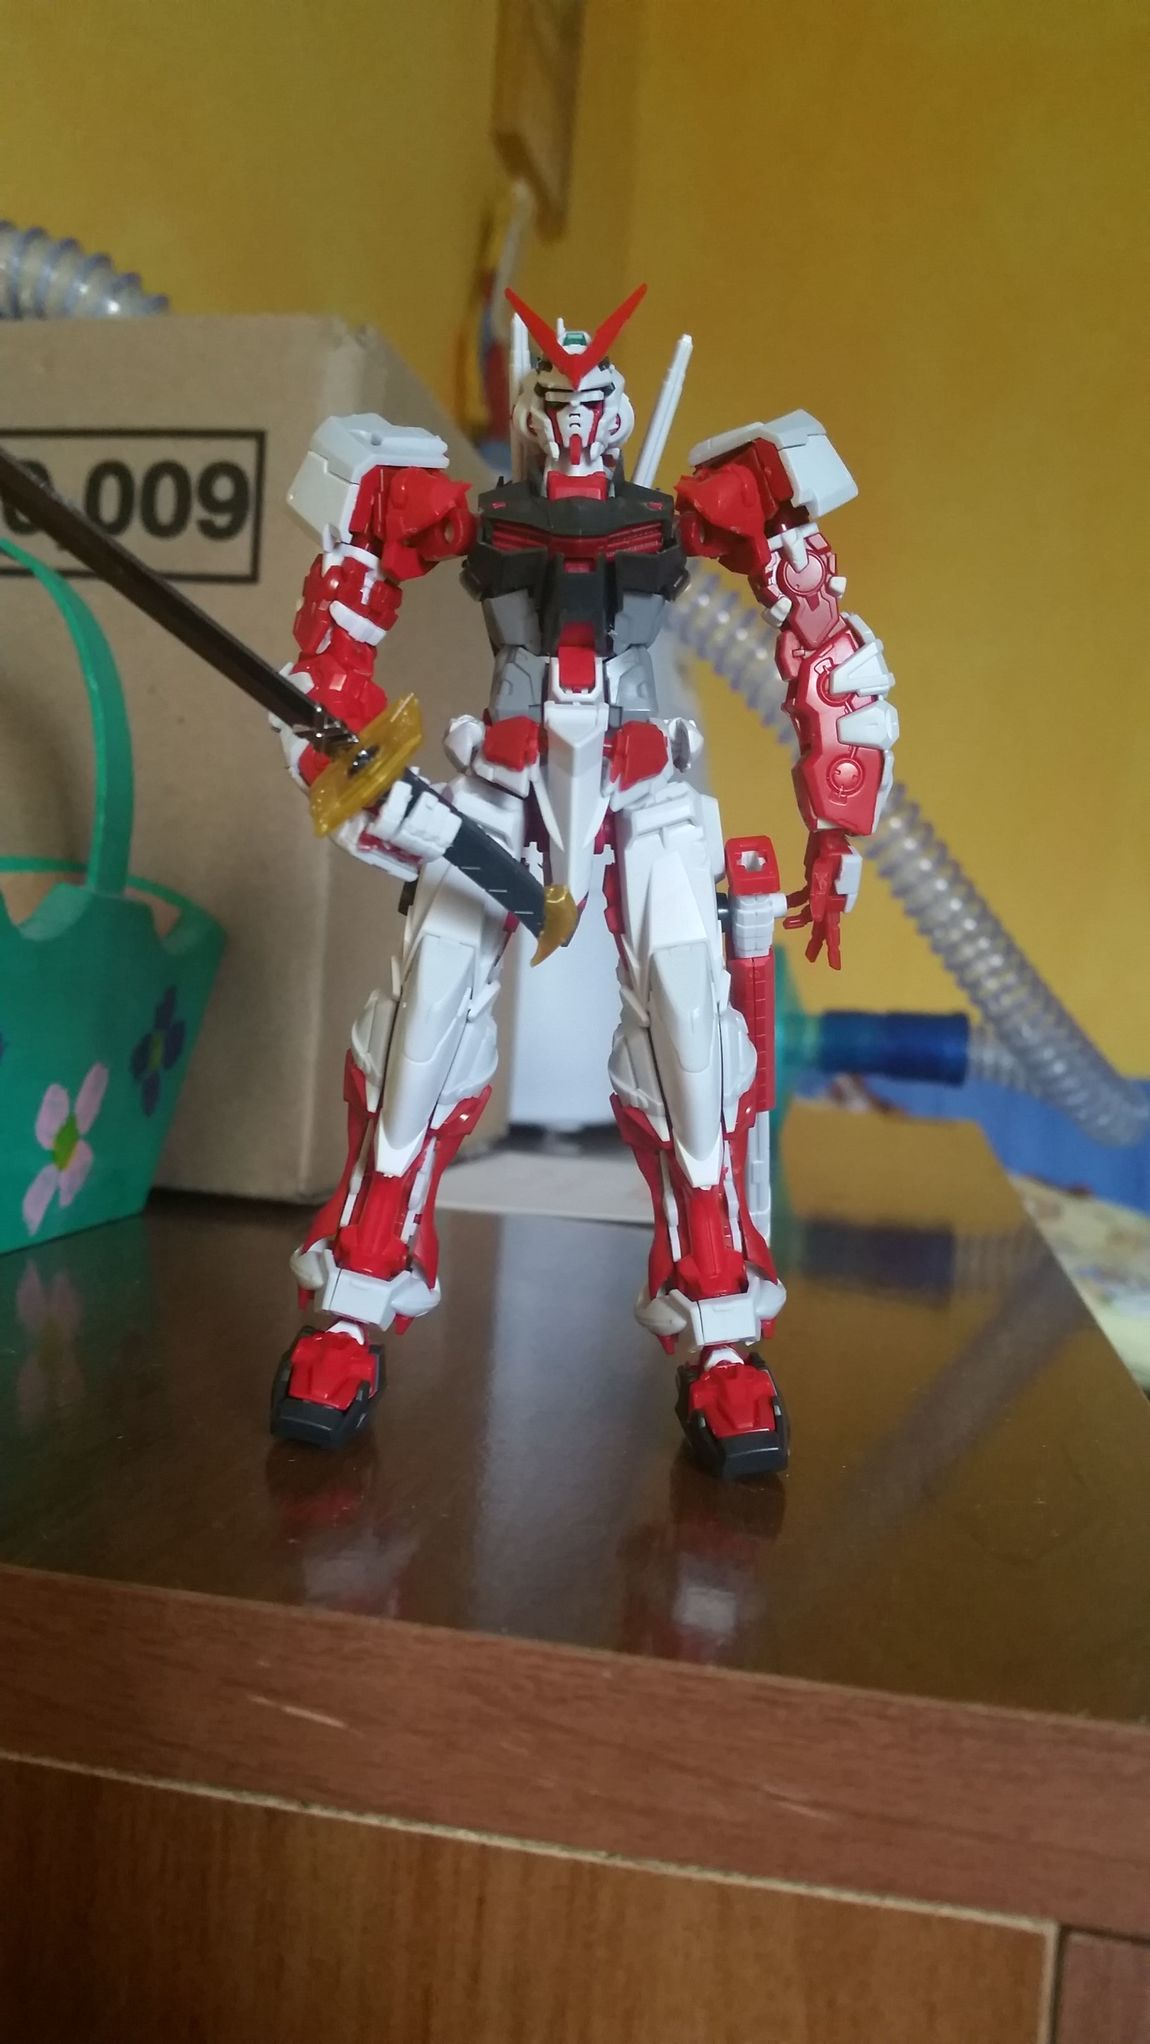 Gundamcollection AstrayRedFrame 1:144 My Hobby Action Figures